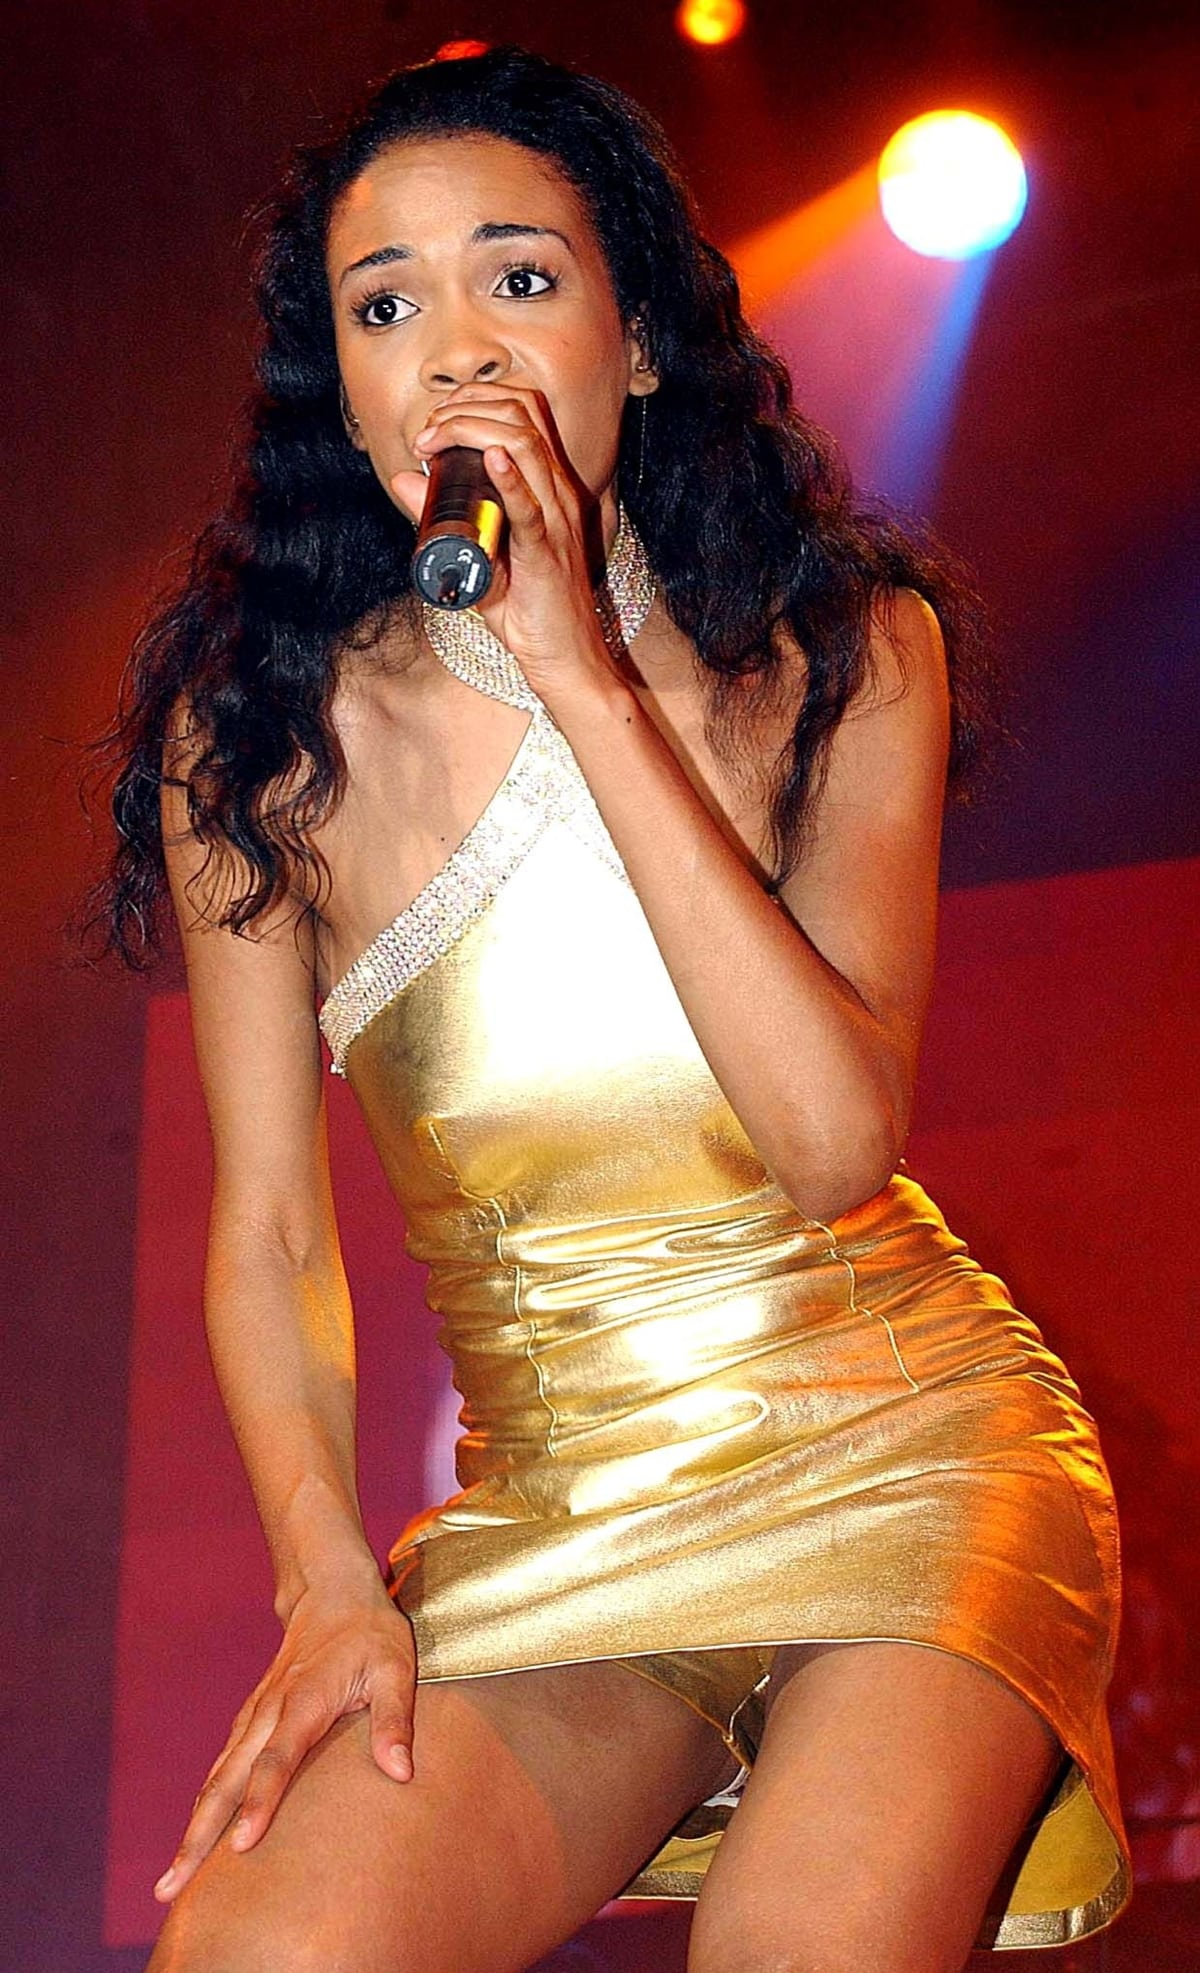 Kelly Rowland of Destiny's Child in concert at the Point Theatre in Dublin, Ireland